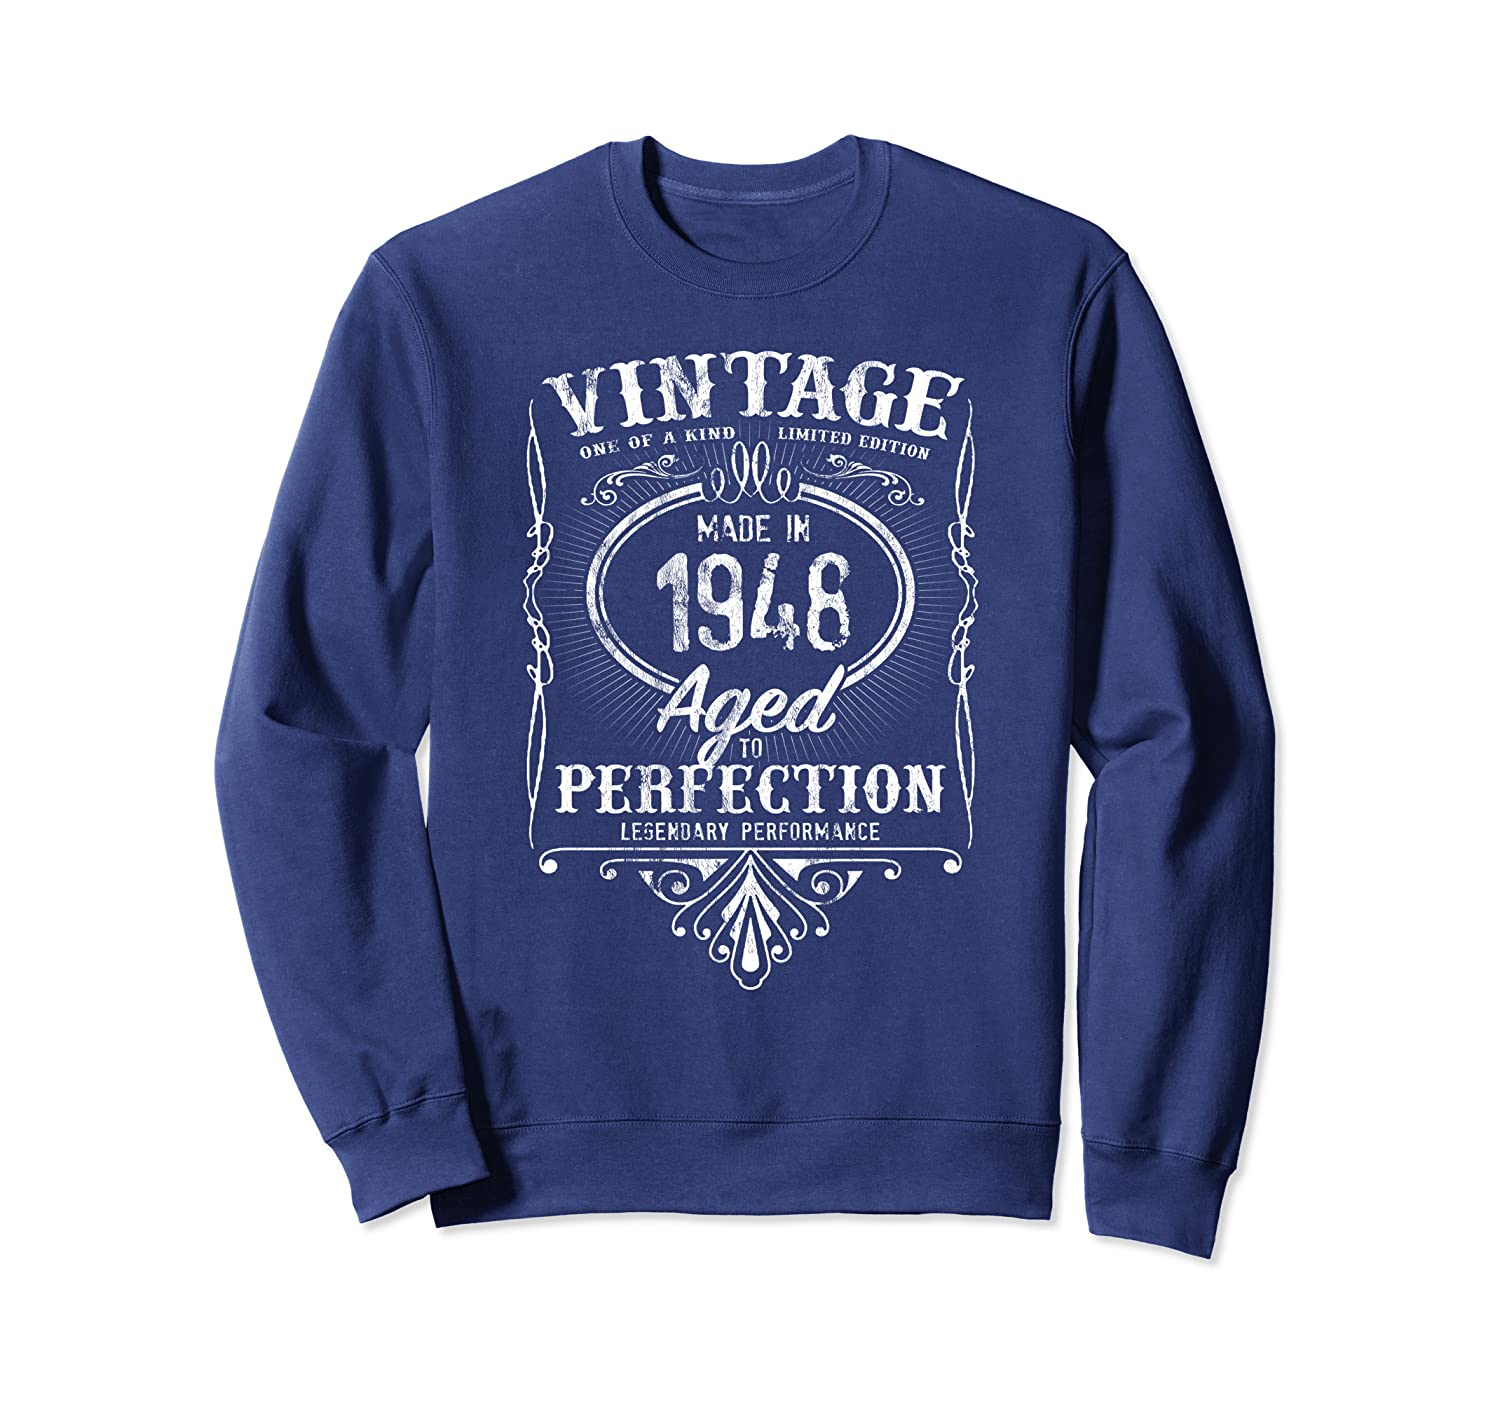 vintage made in 1948 classic 71st birthday aged perfection sweatshirt 1 - Classic Shop